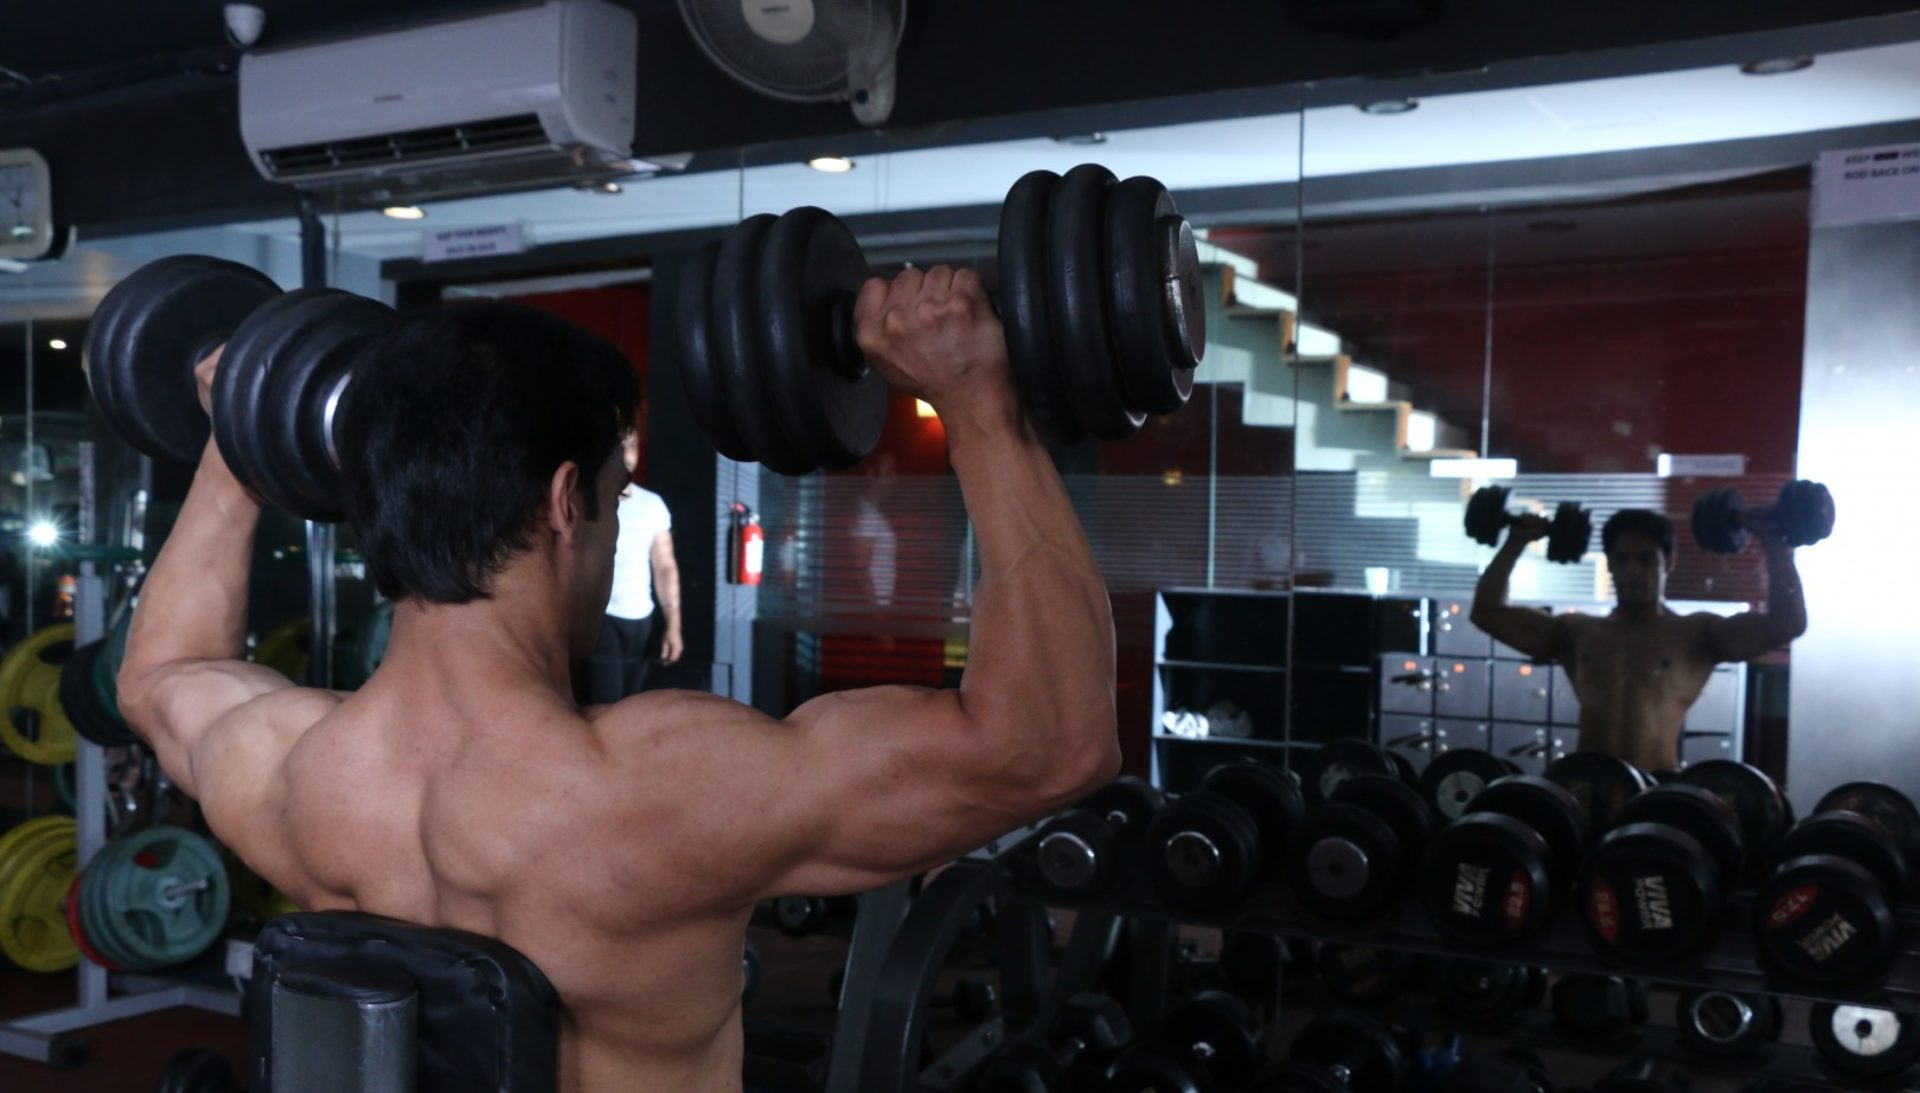 Indian Society for Strength Training